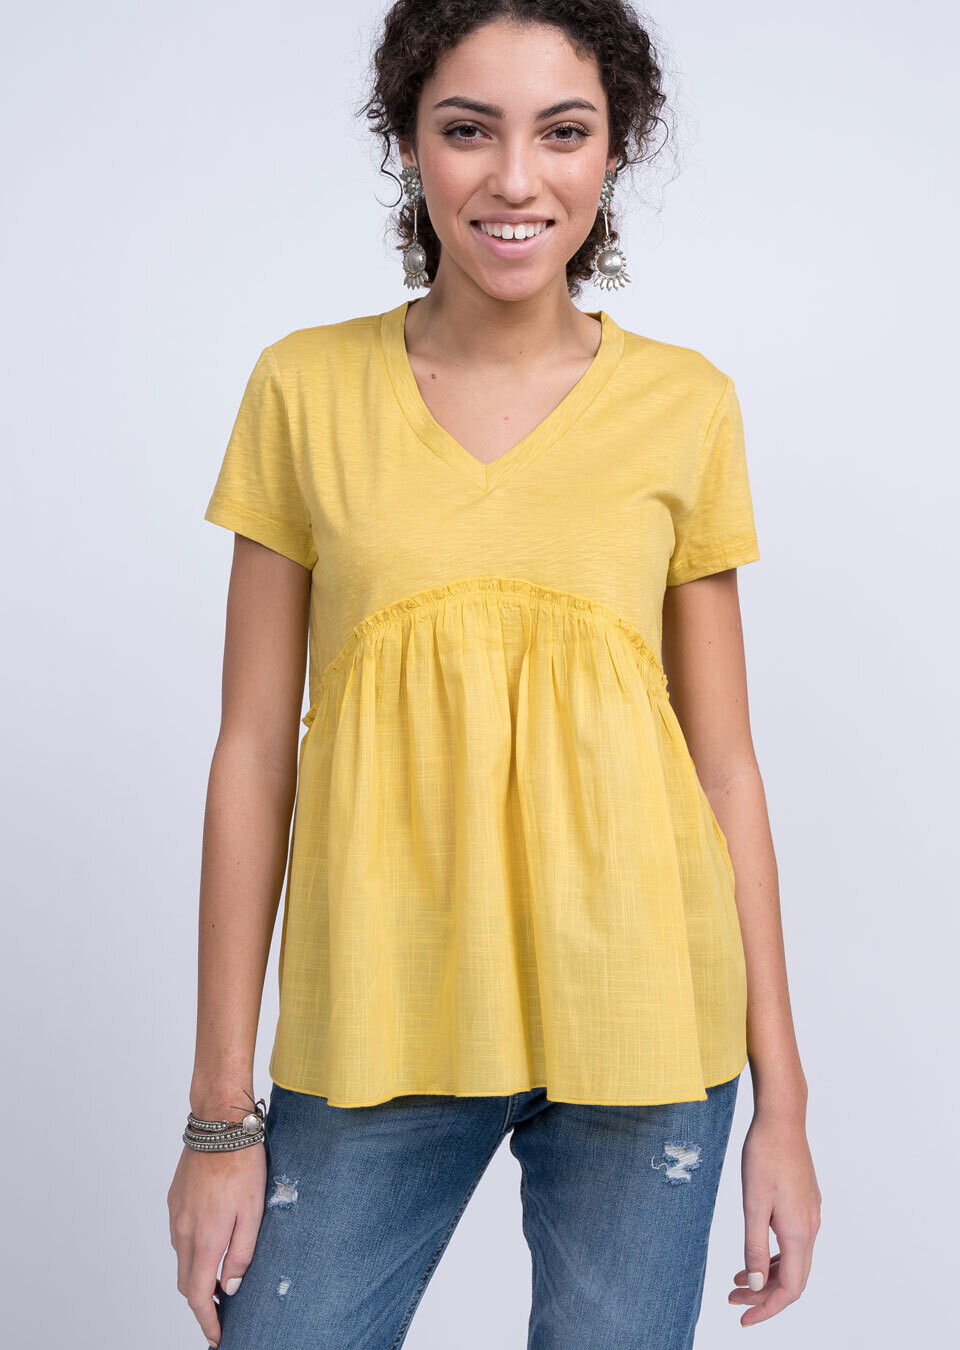 Baby Doll Top yellow